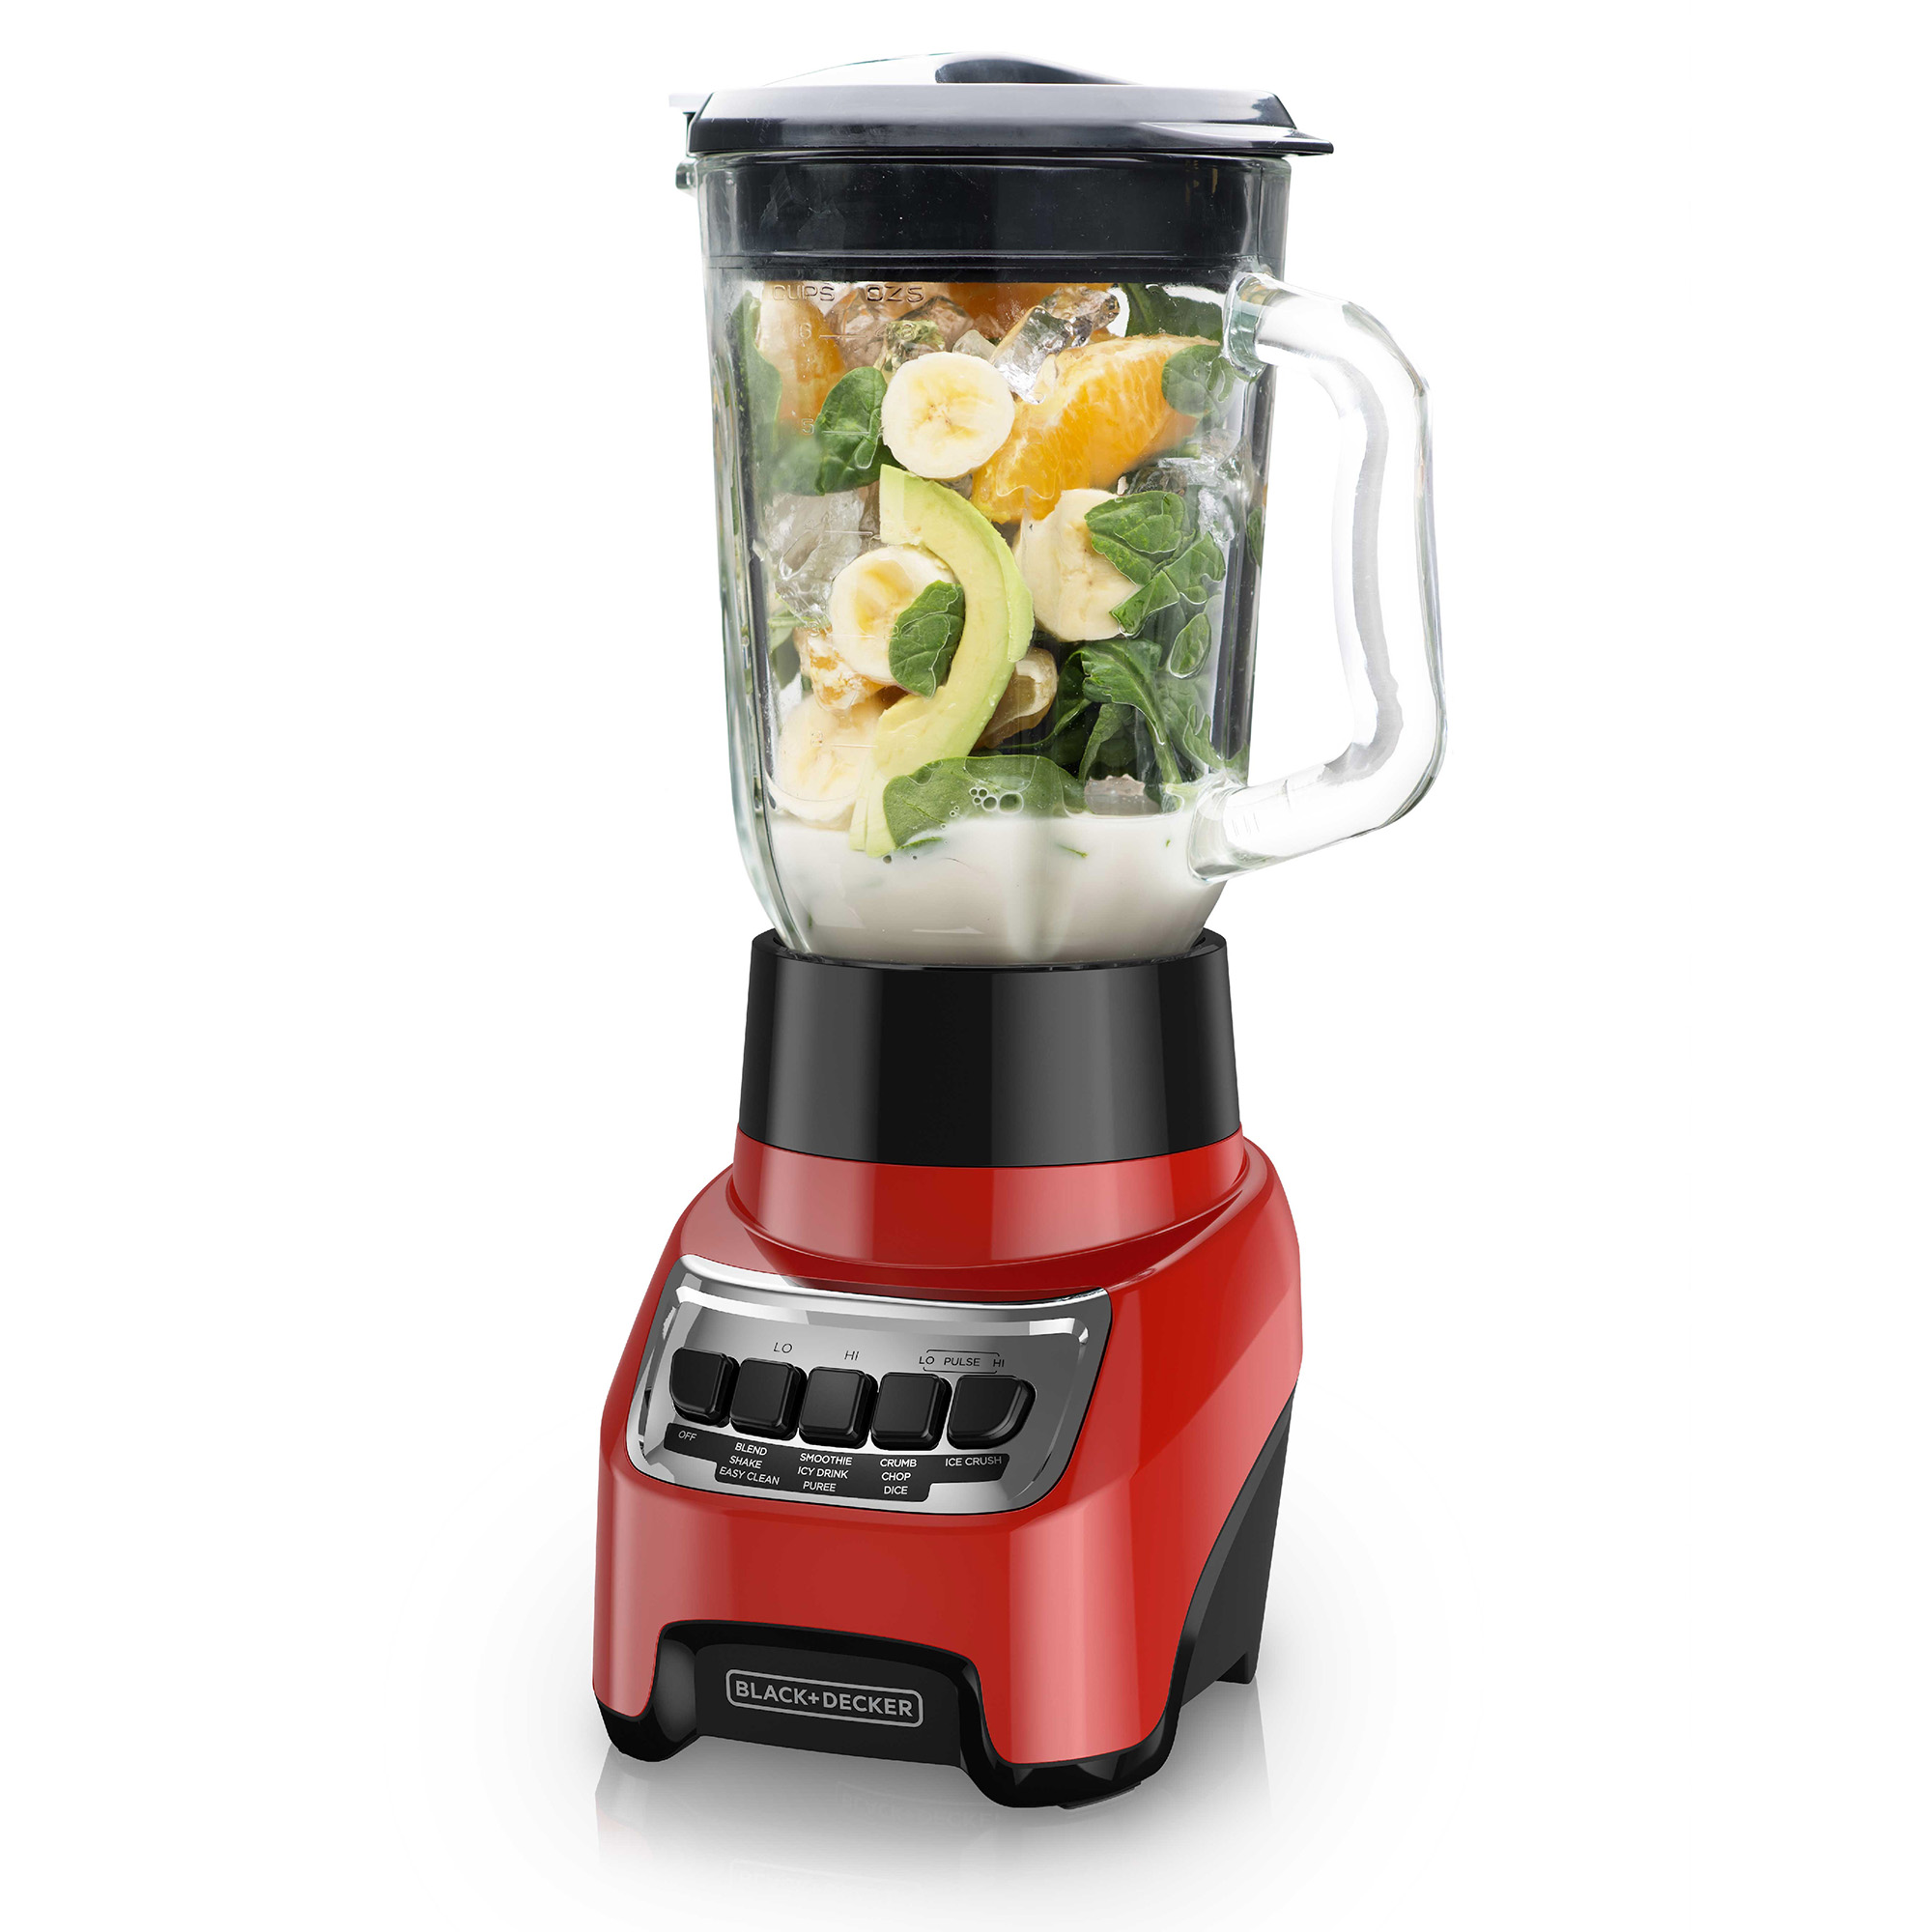 powercrush multi function blender with 6 cup glass jar red rh blackanddeckerappliances com Manual Blender Purchase Hand Blender